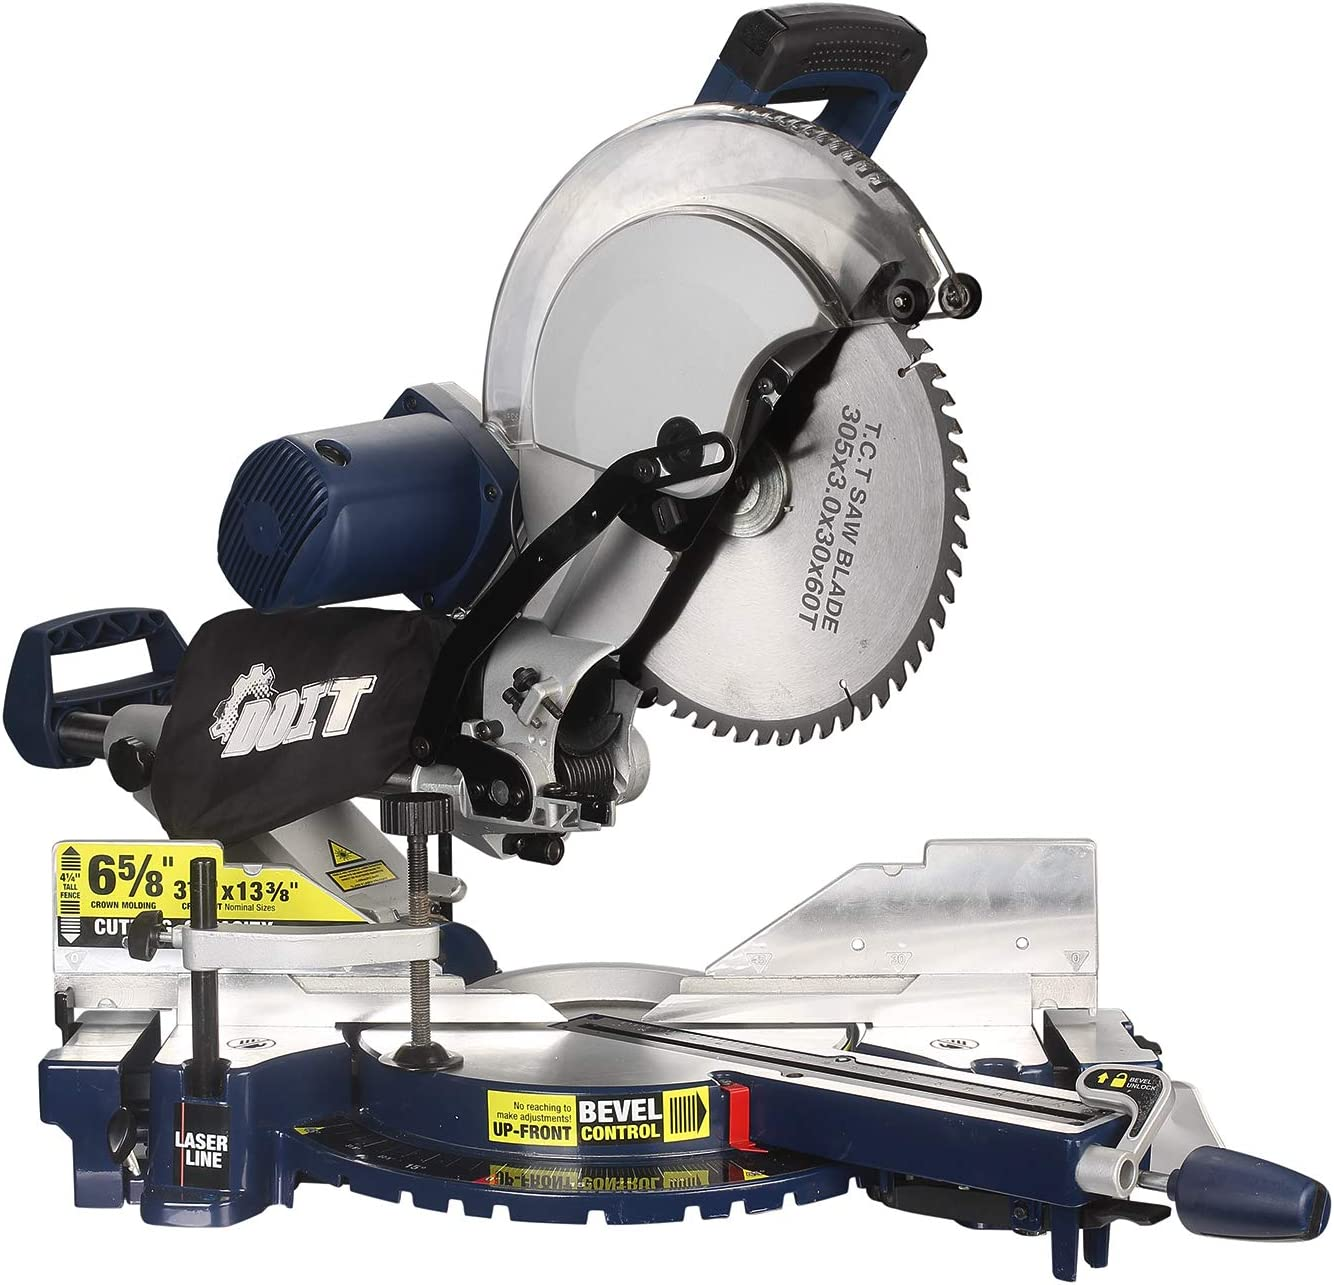 DOIT 12-Inch Dual-Bevel Sliding Compound Miter Saw